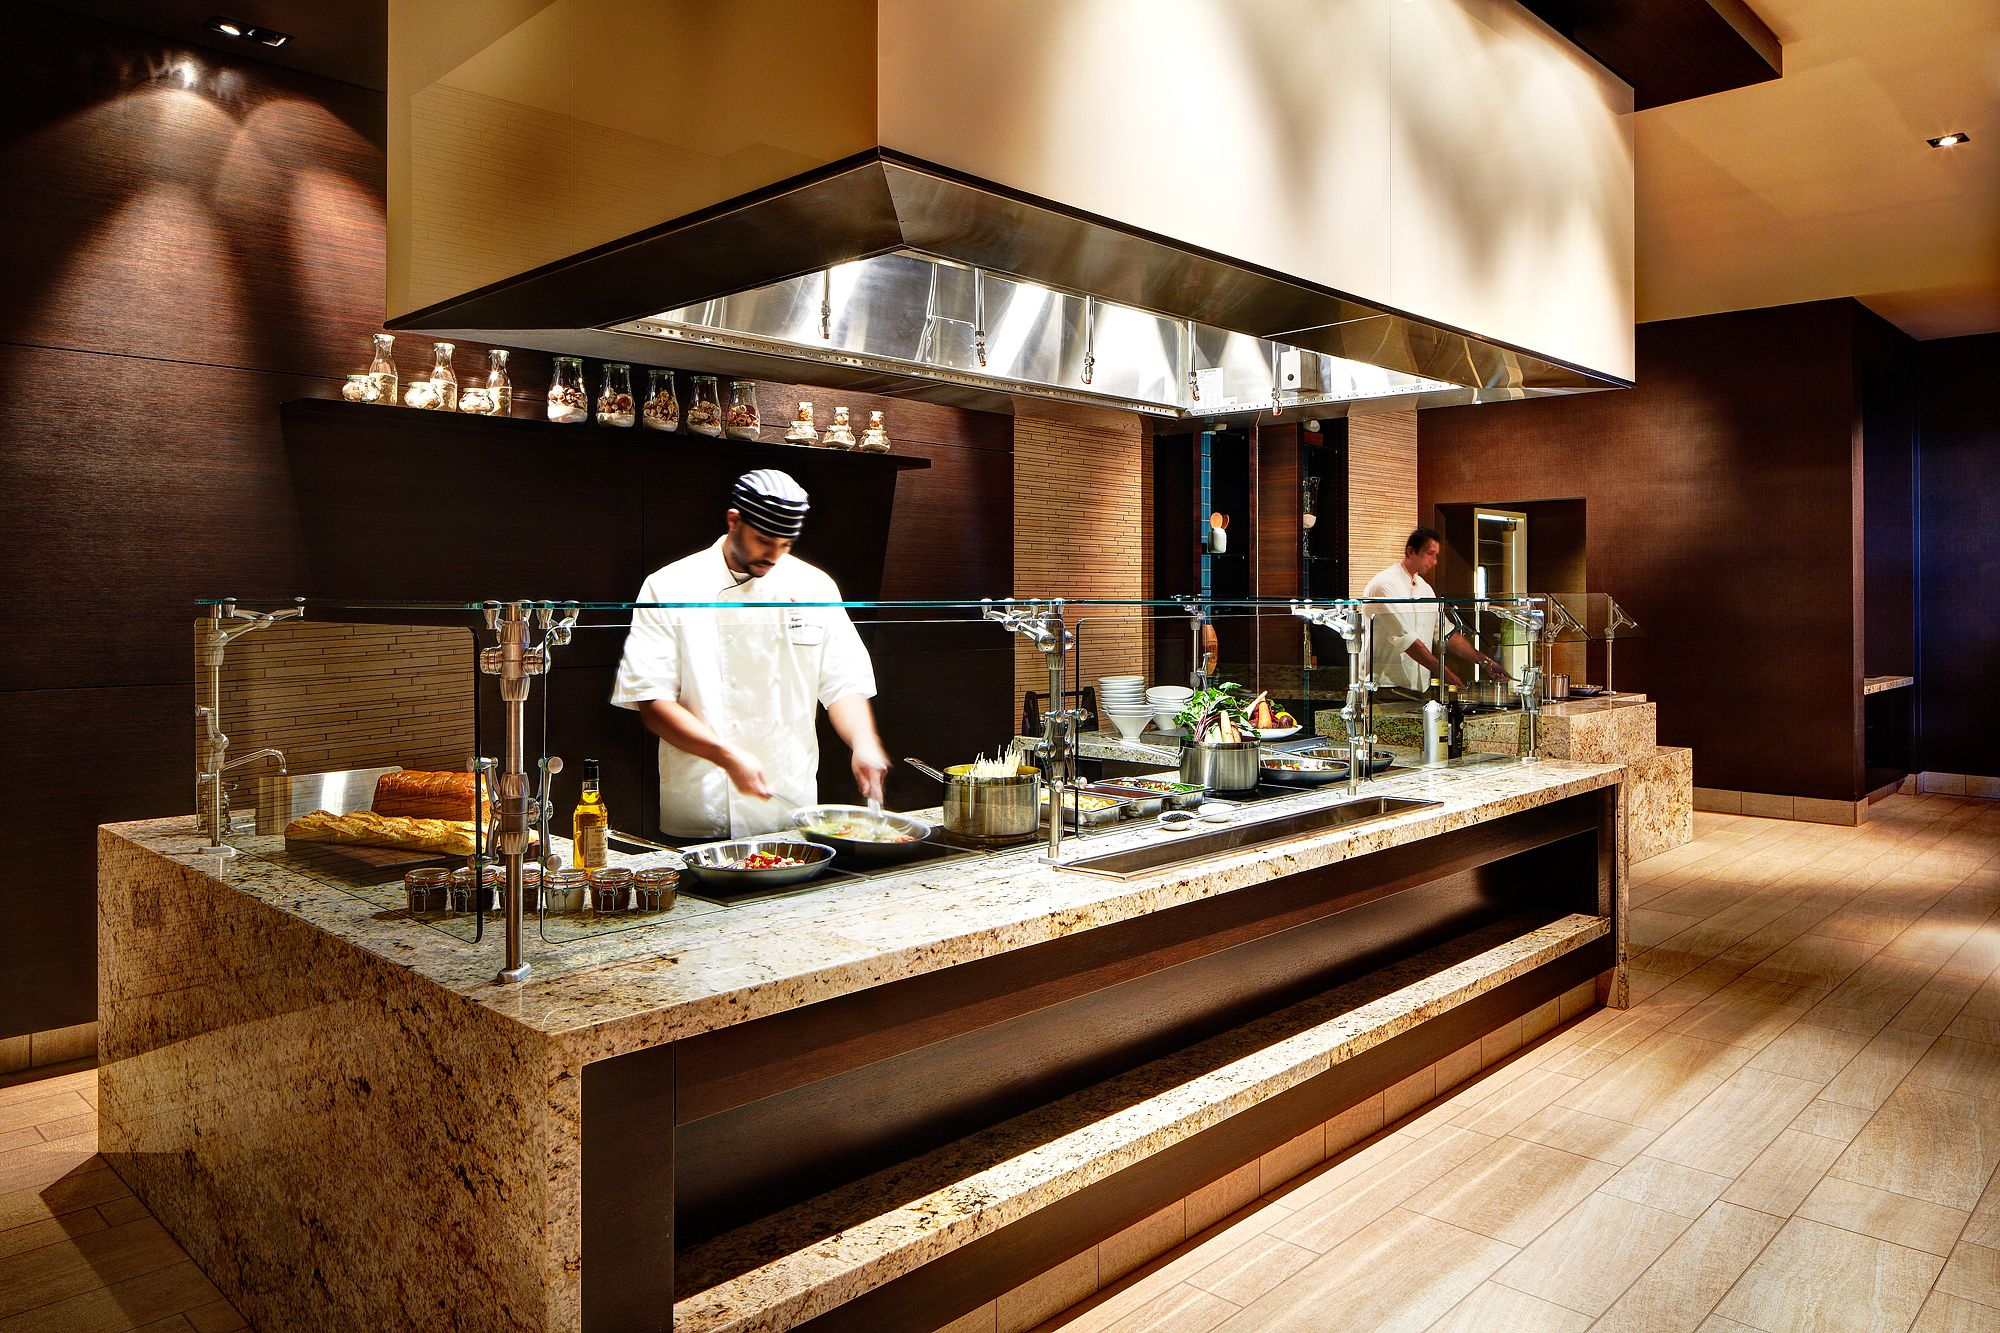 Crown casino buffet kitchen